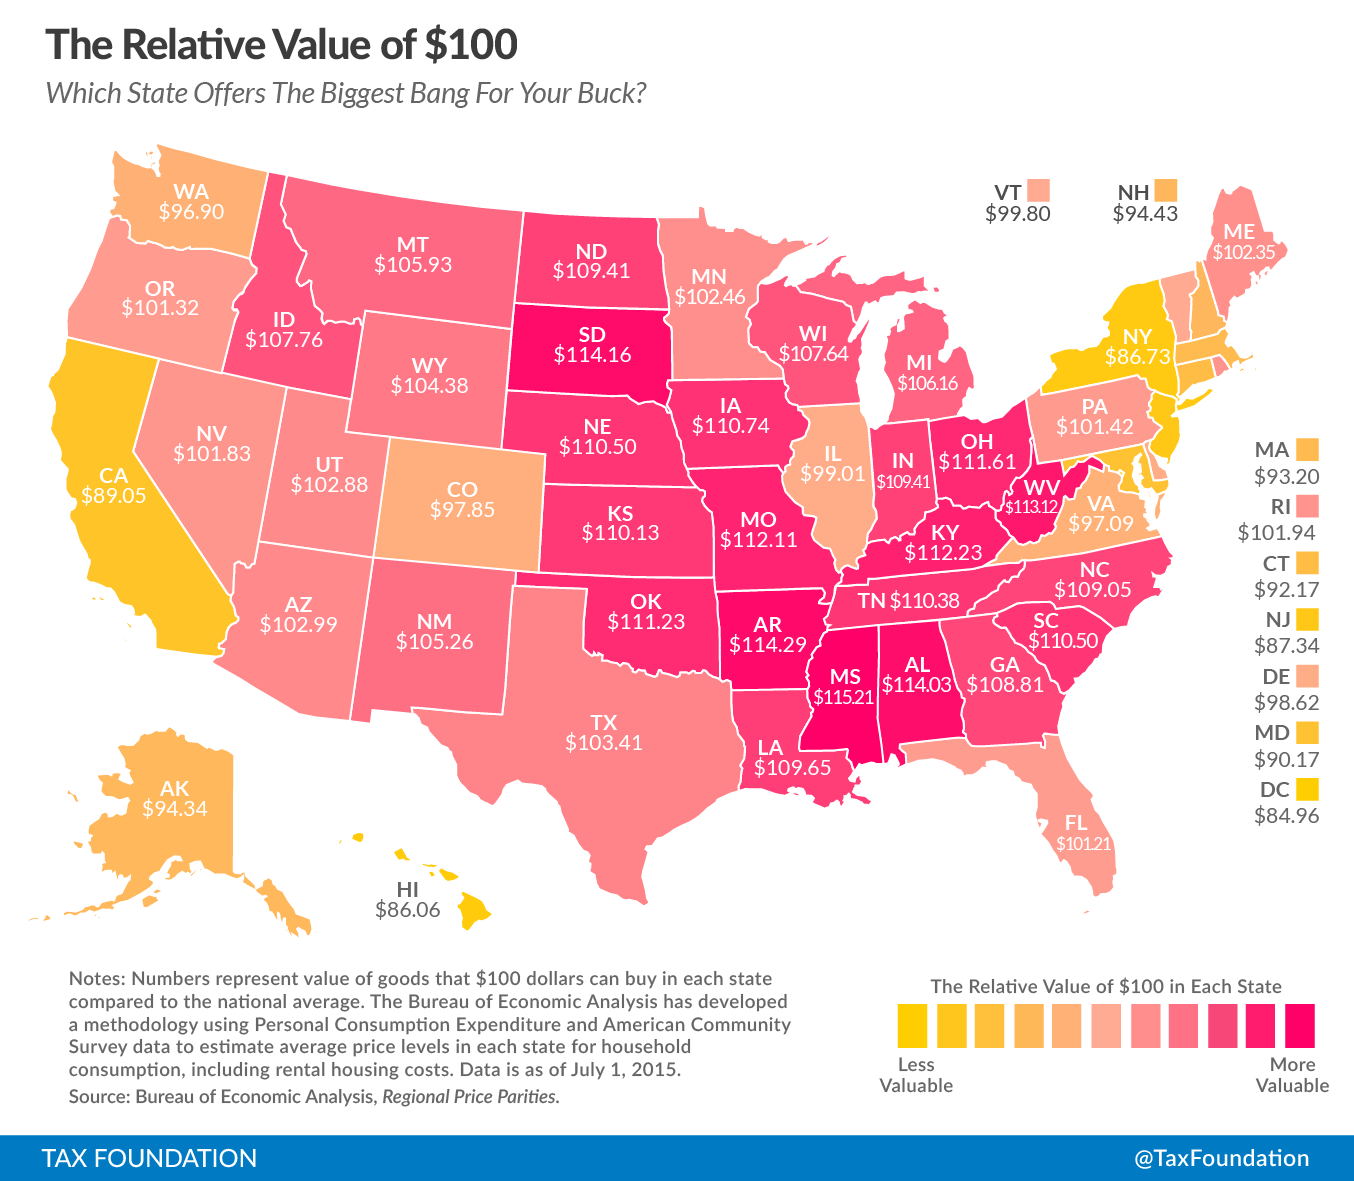 value of 100 dollars - state by state